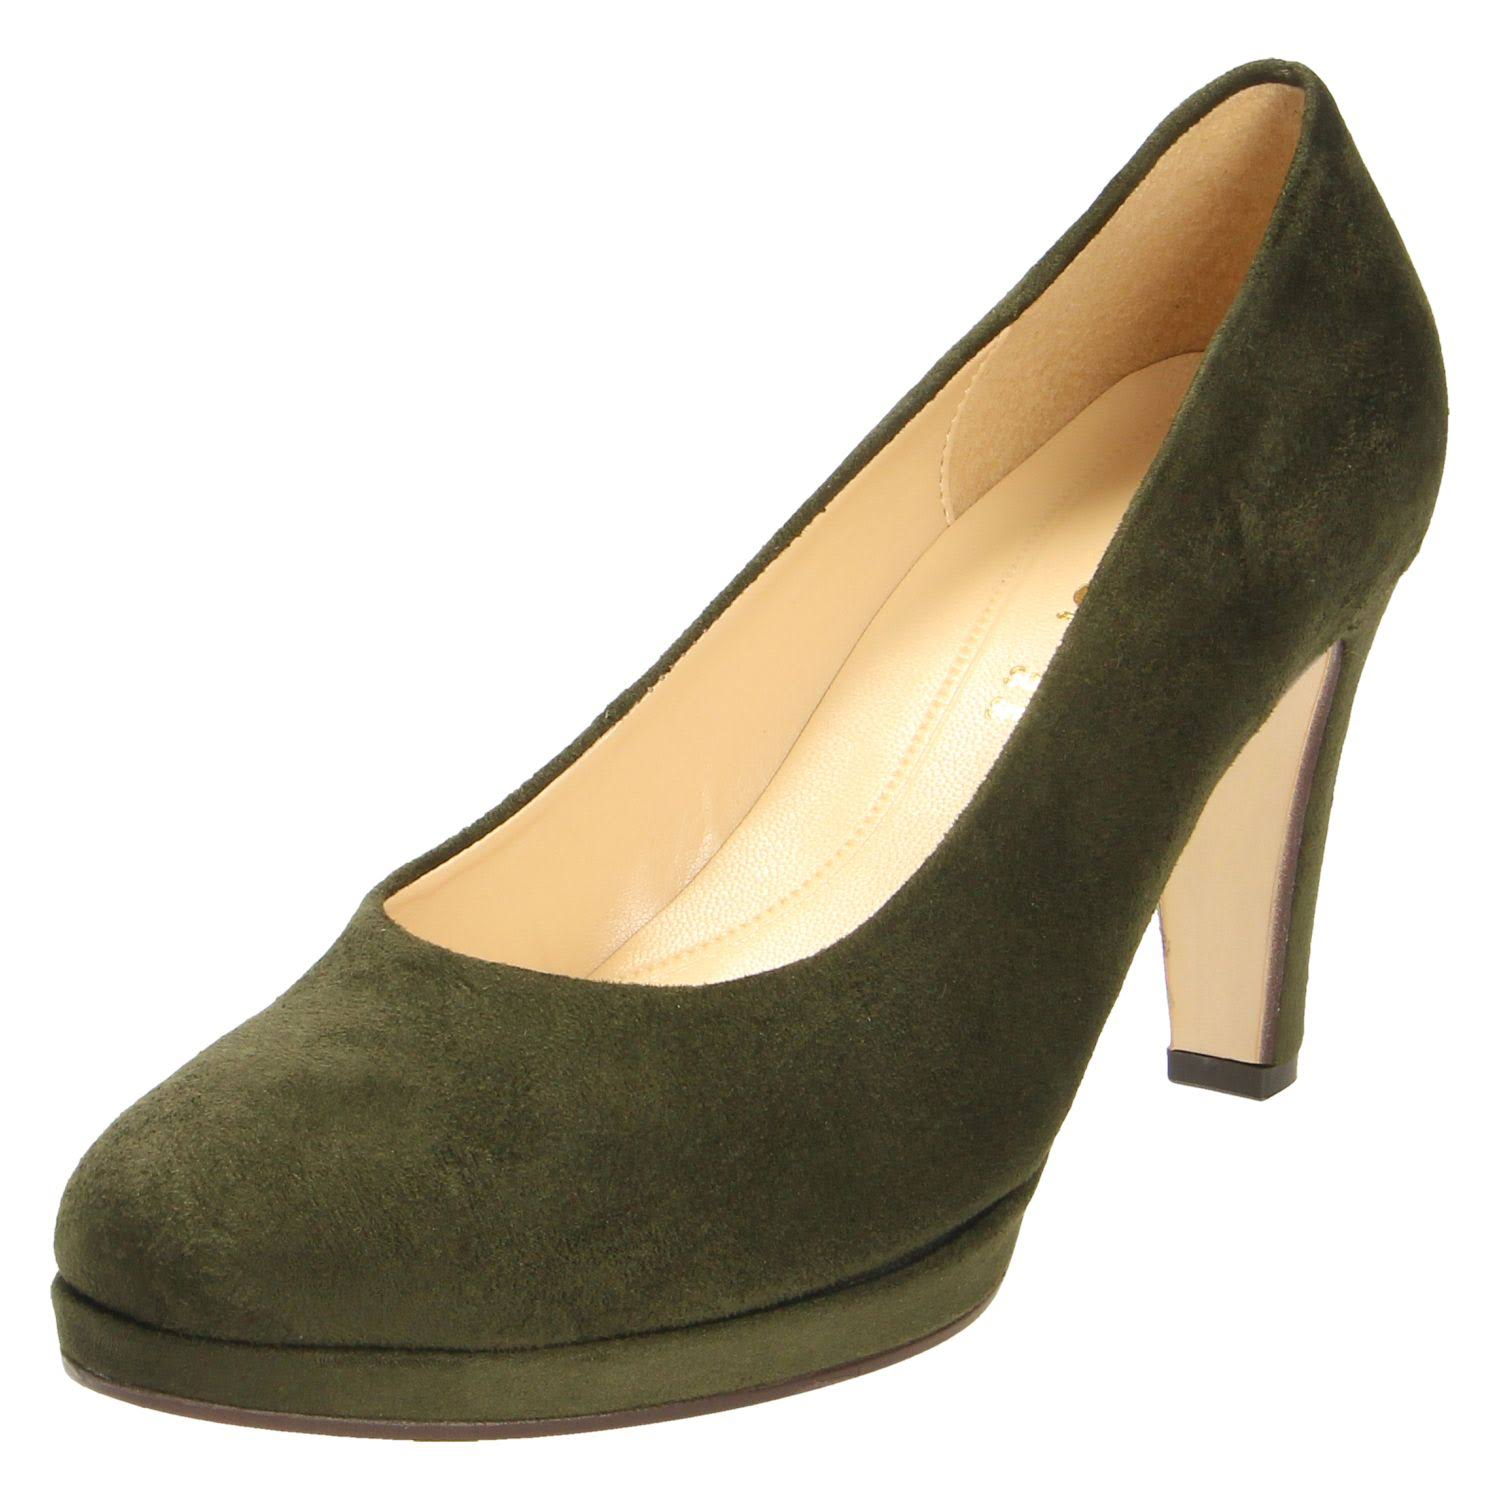 4 Heels Women Leather 5 Gabor Green qpSMzVU